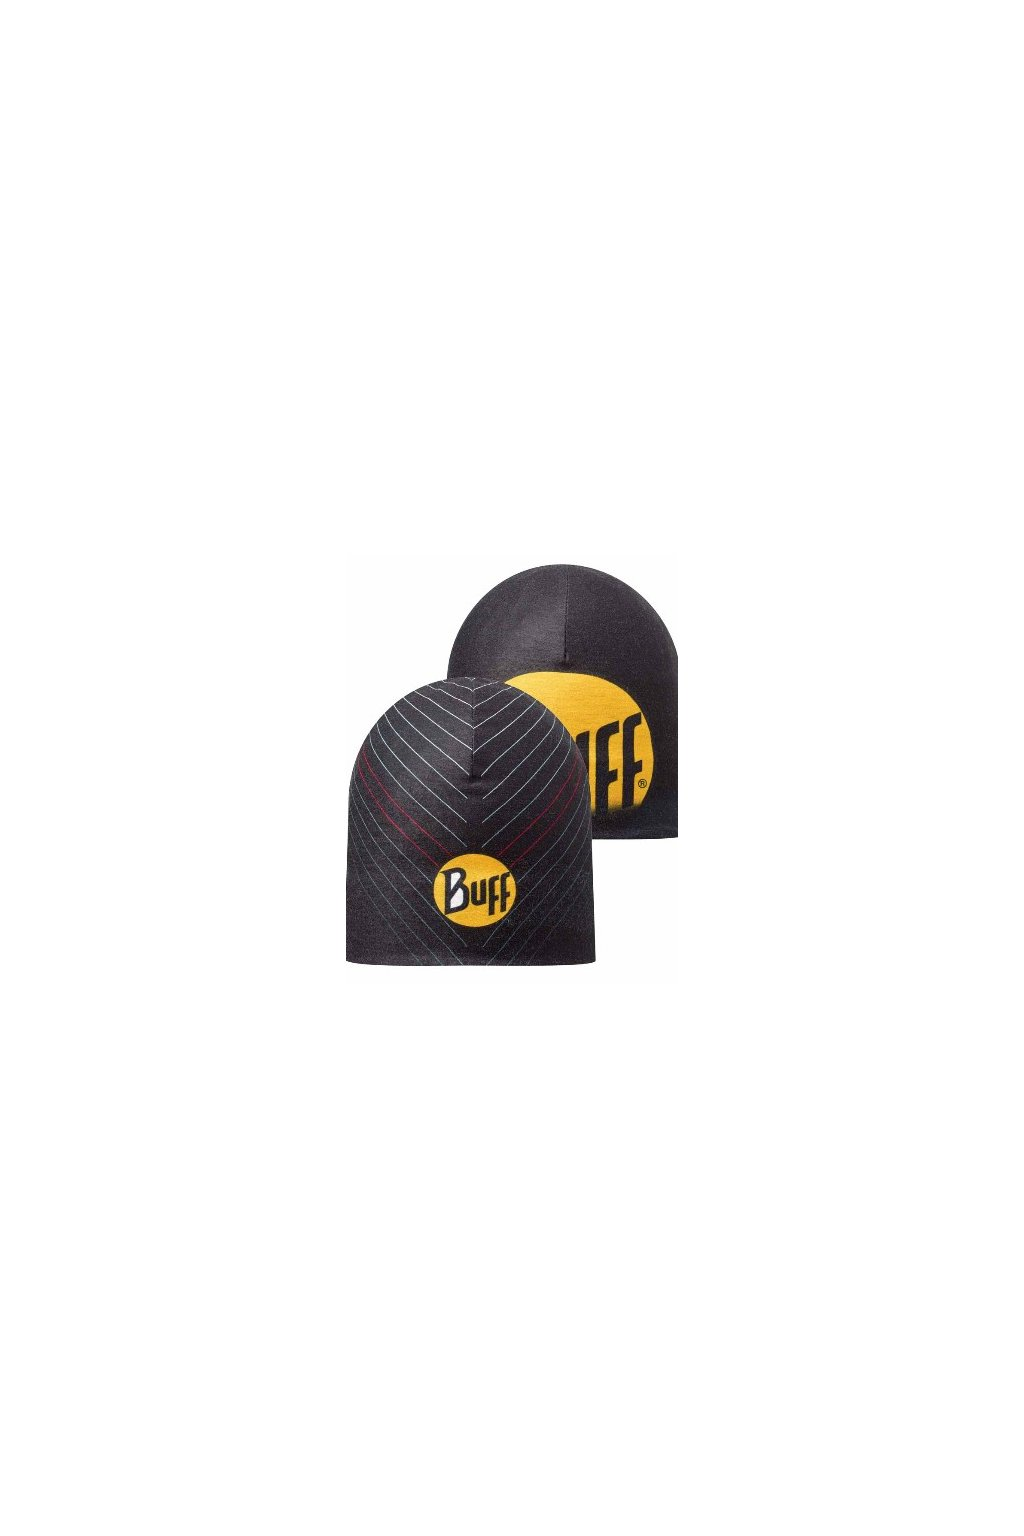 MICROFIBER REVERSIBLE HAT BUFF R ULTIMATE